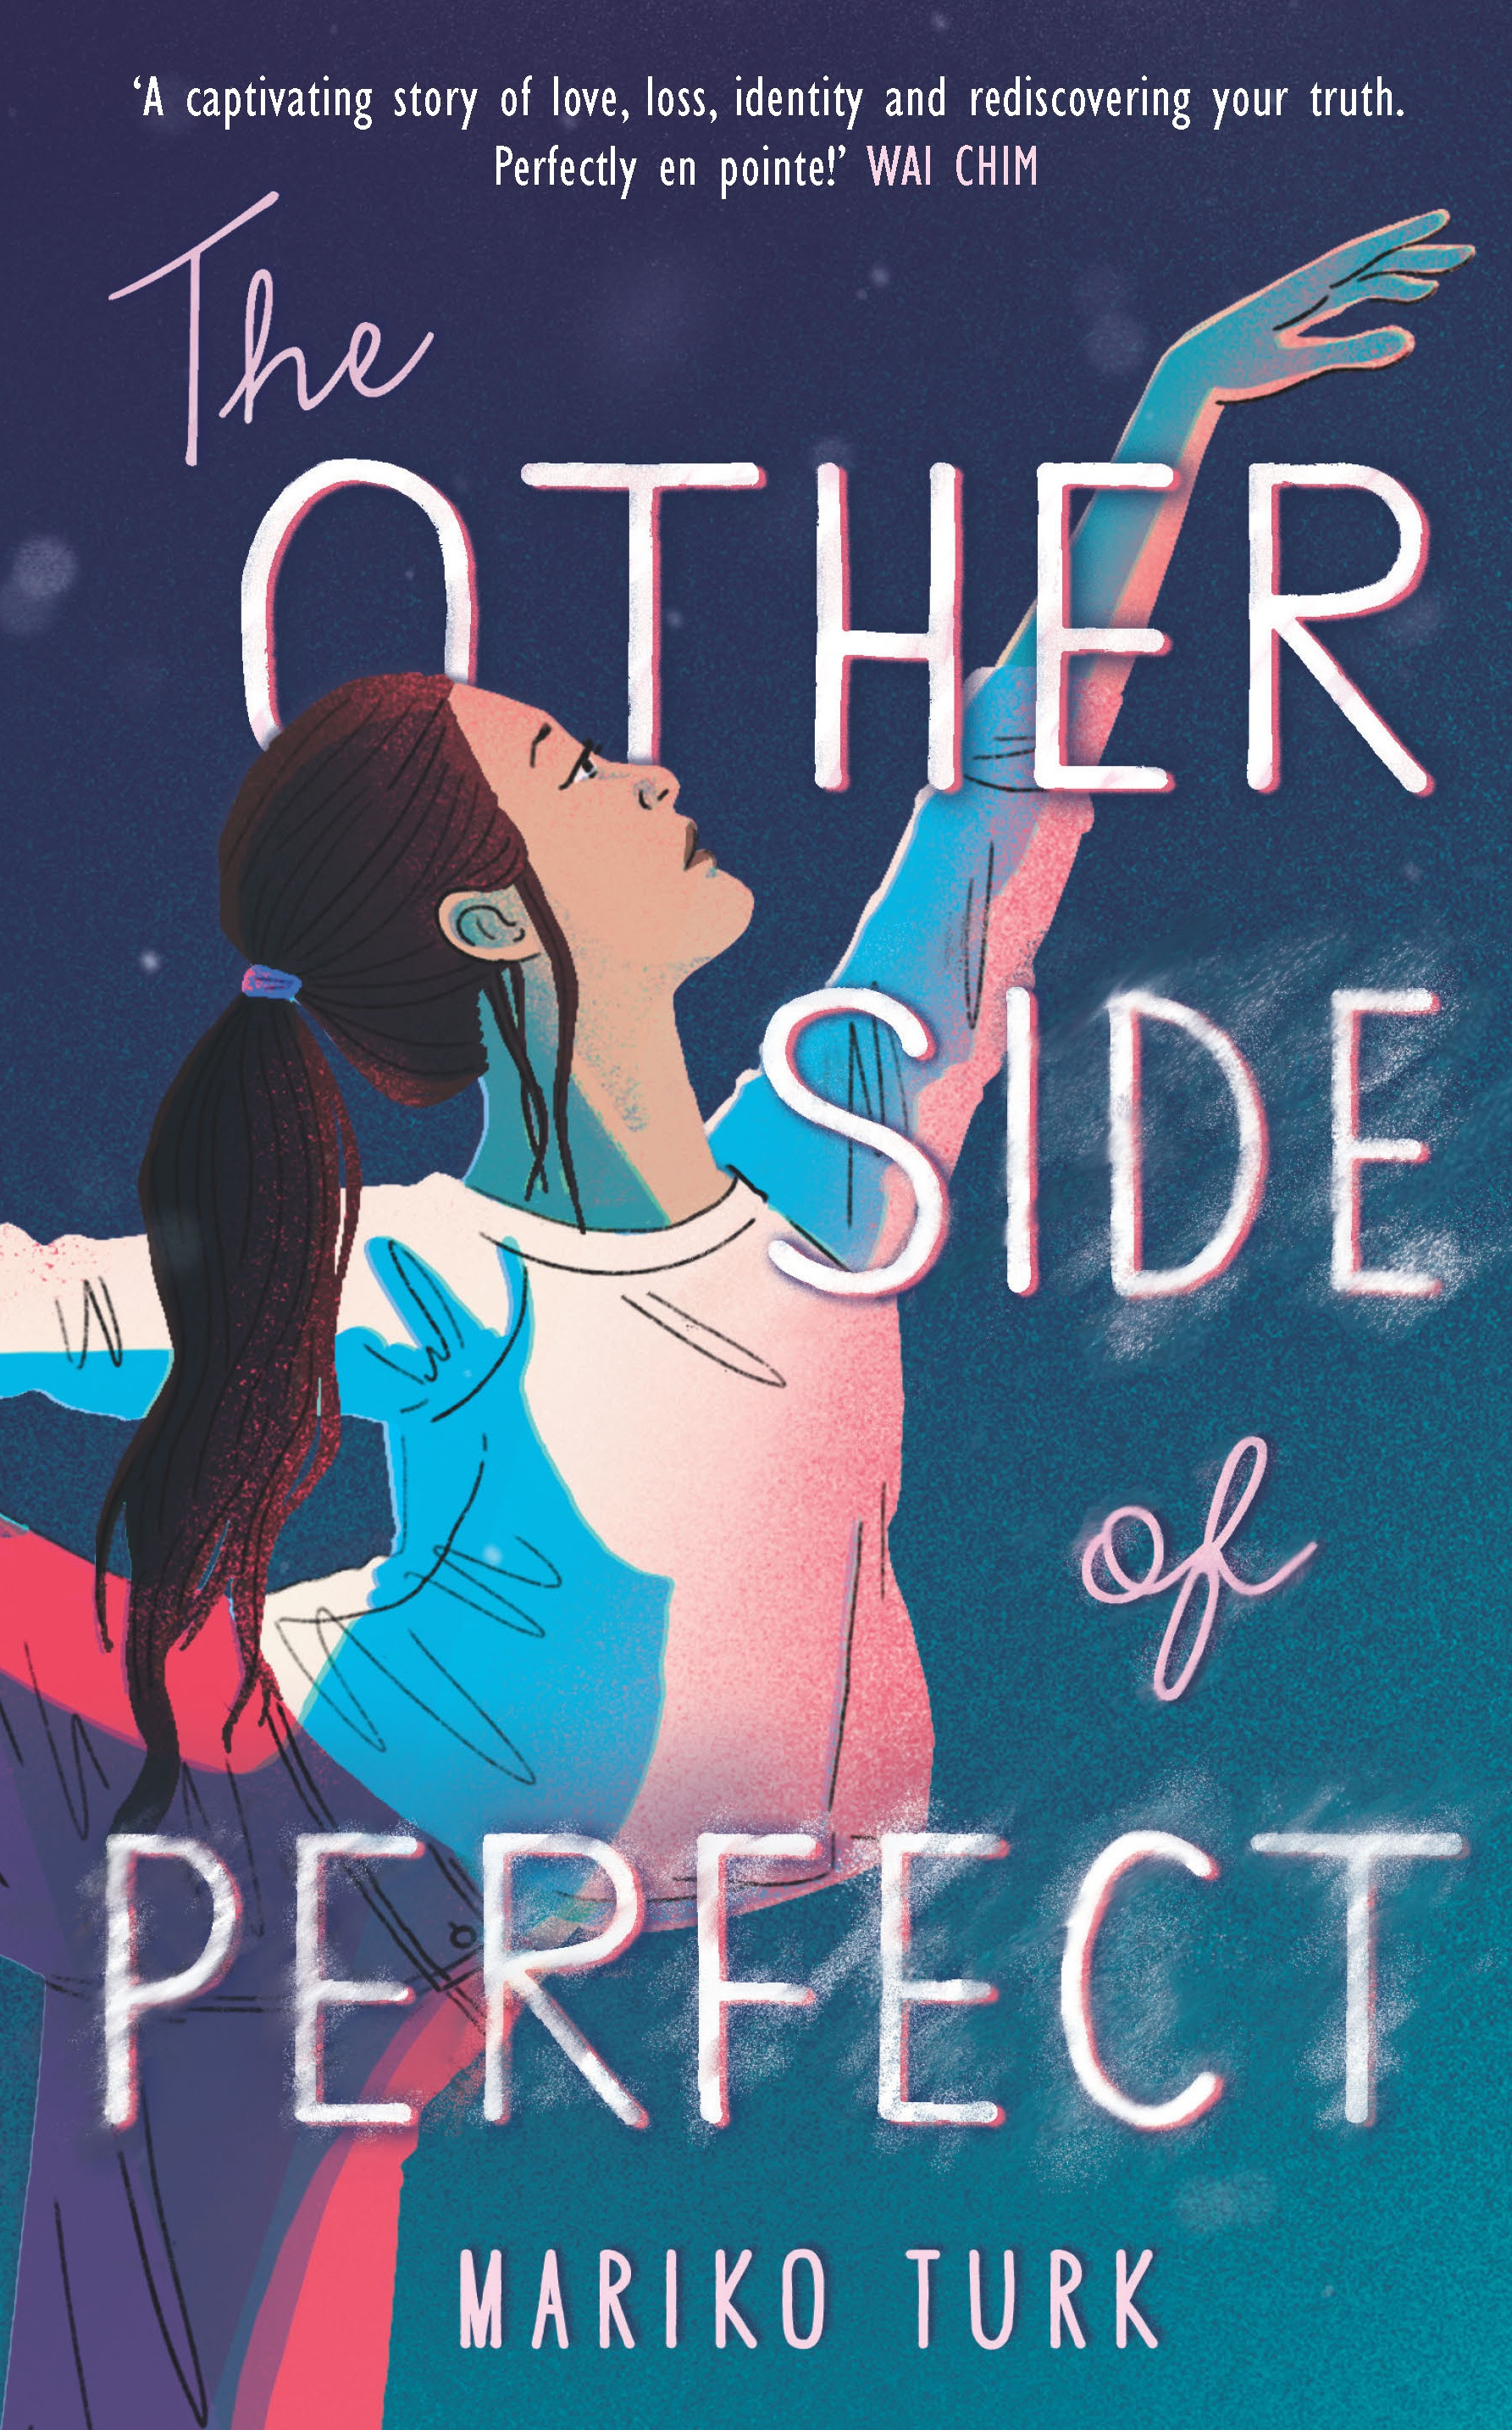 Cover for The Other Side of Perfect by Mariko Turk. The cover depicts a girl with long black hair, her arm outstretched like a dancer's, doing a